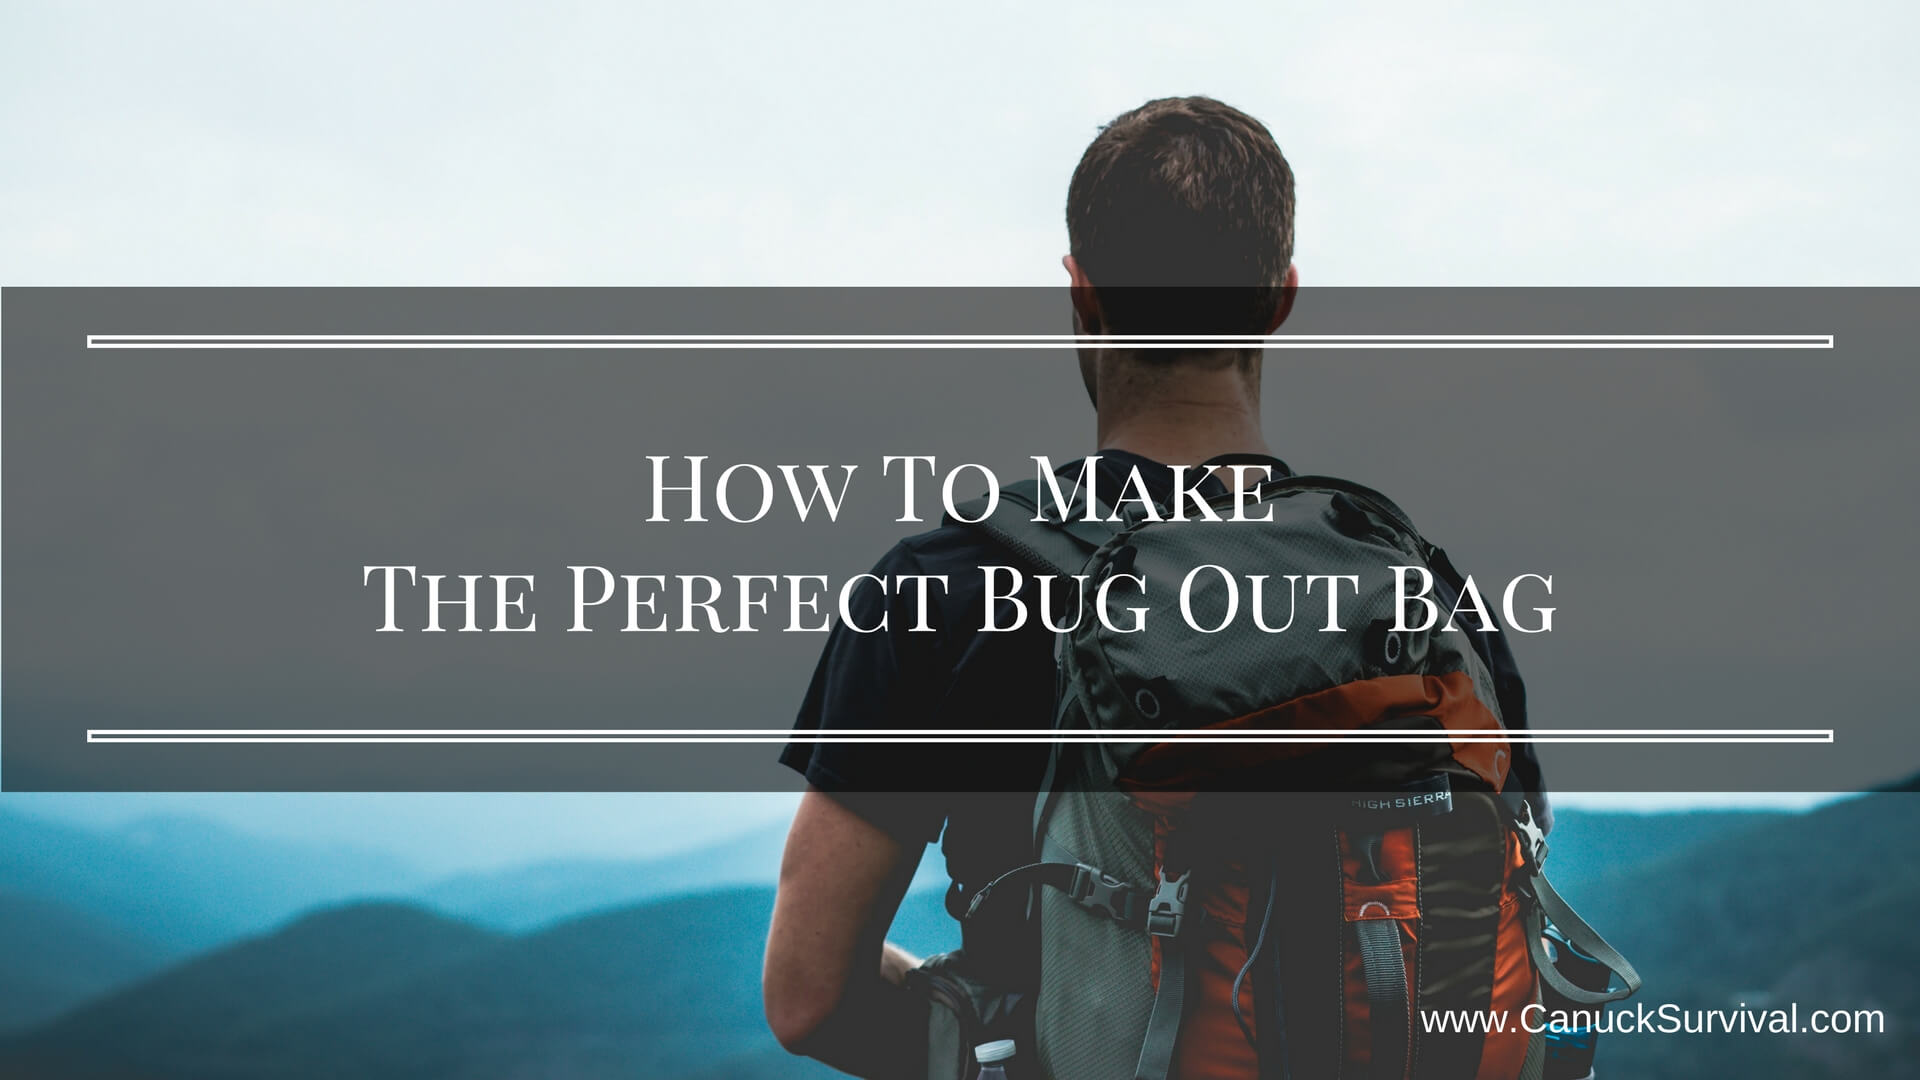 How To Make The Perfect Bug Out Bag